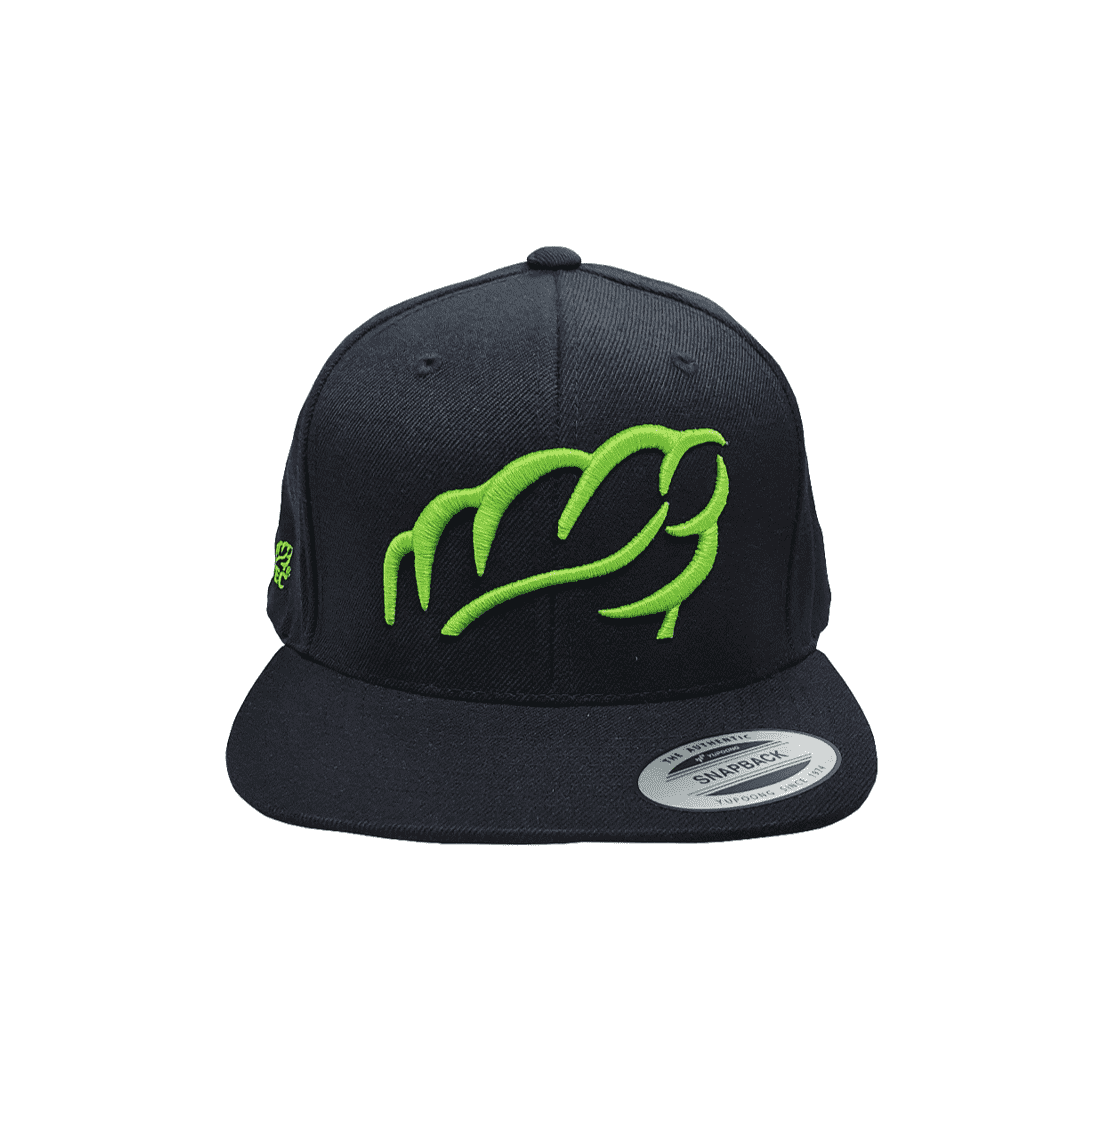 AT0047 Lime Snap Back Cap - Arbortec Forestwear